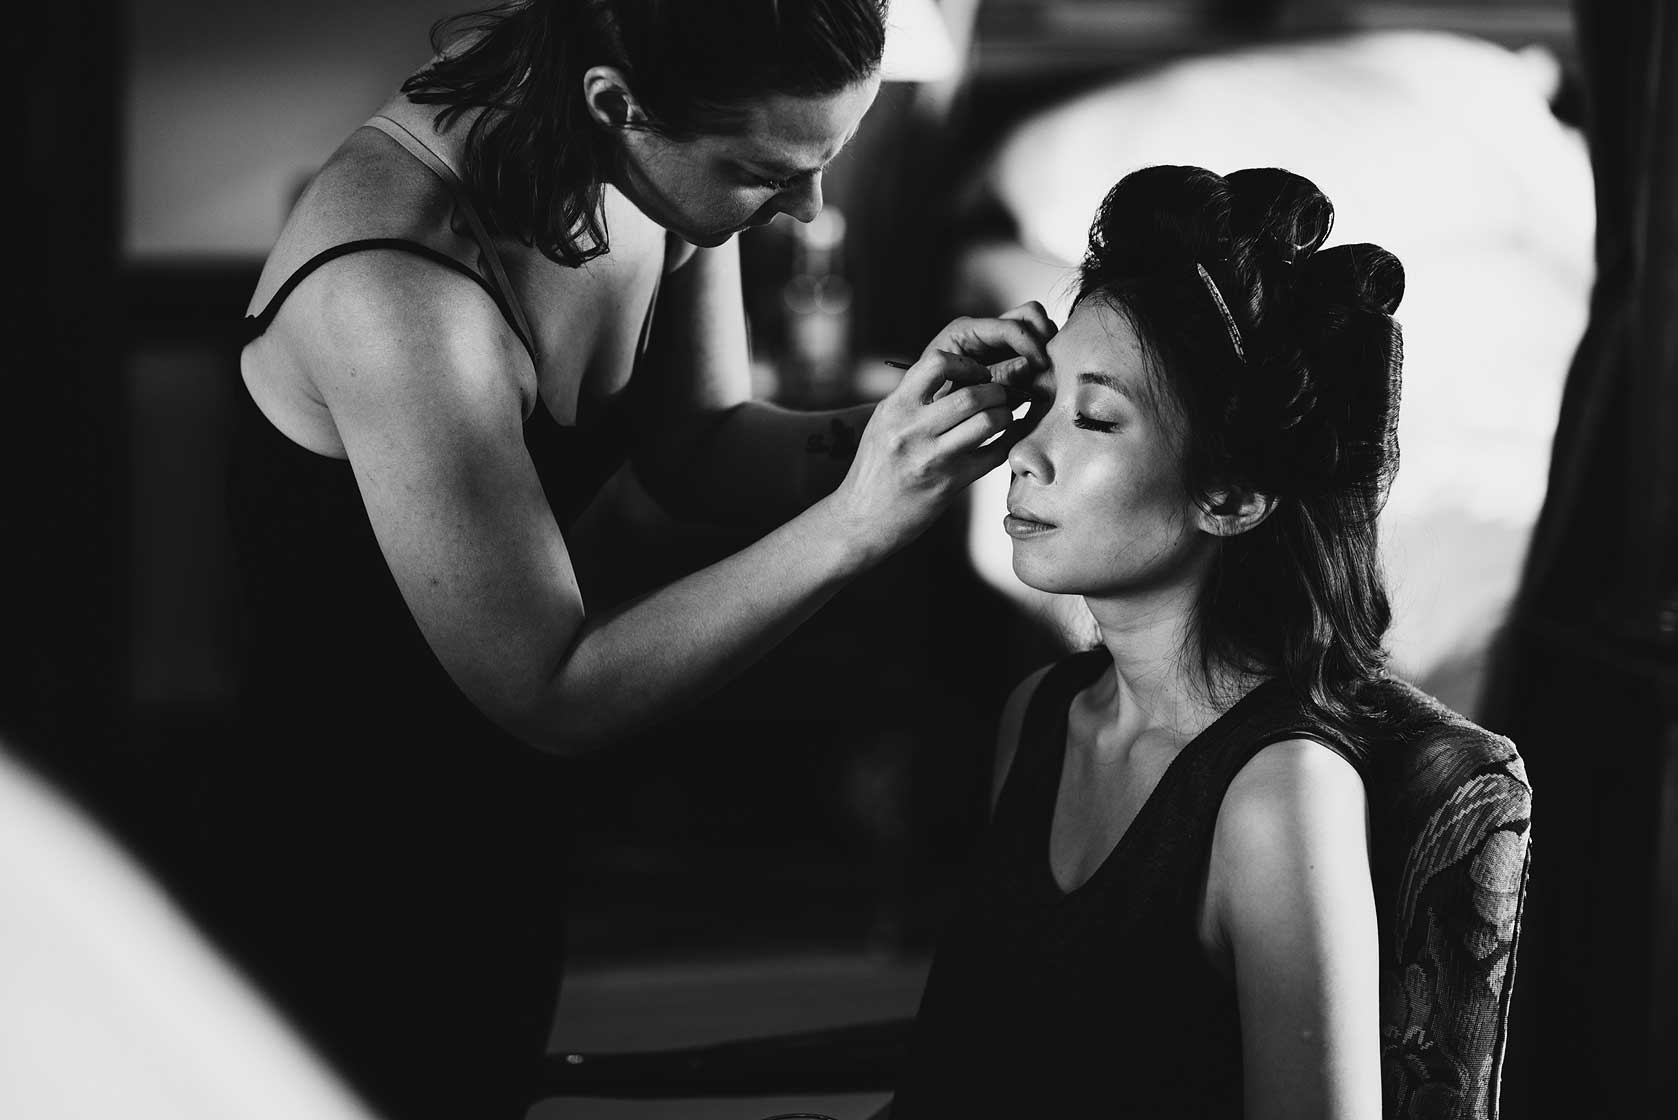 A make-up artist prepares the bride